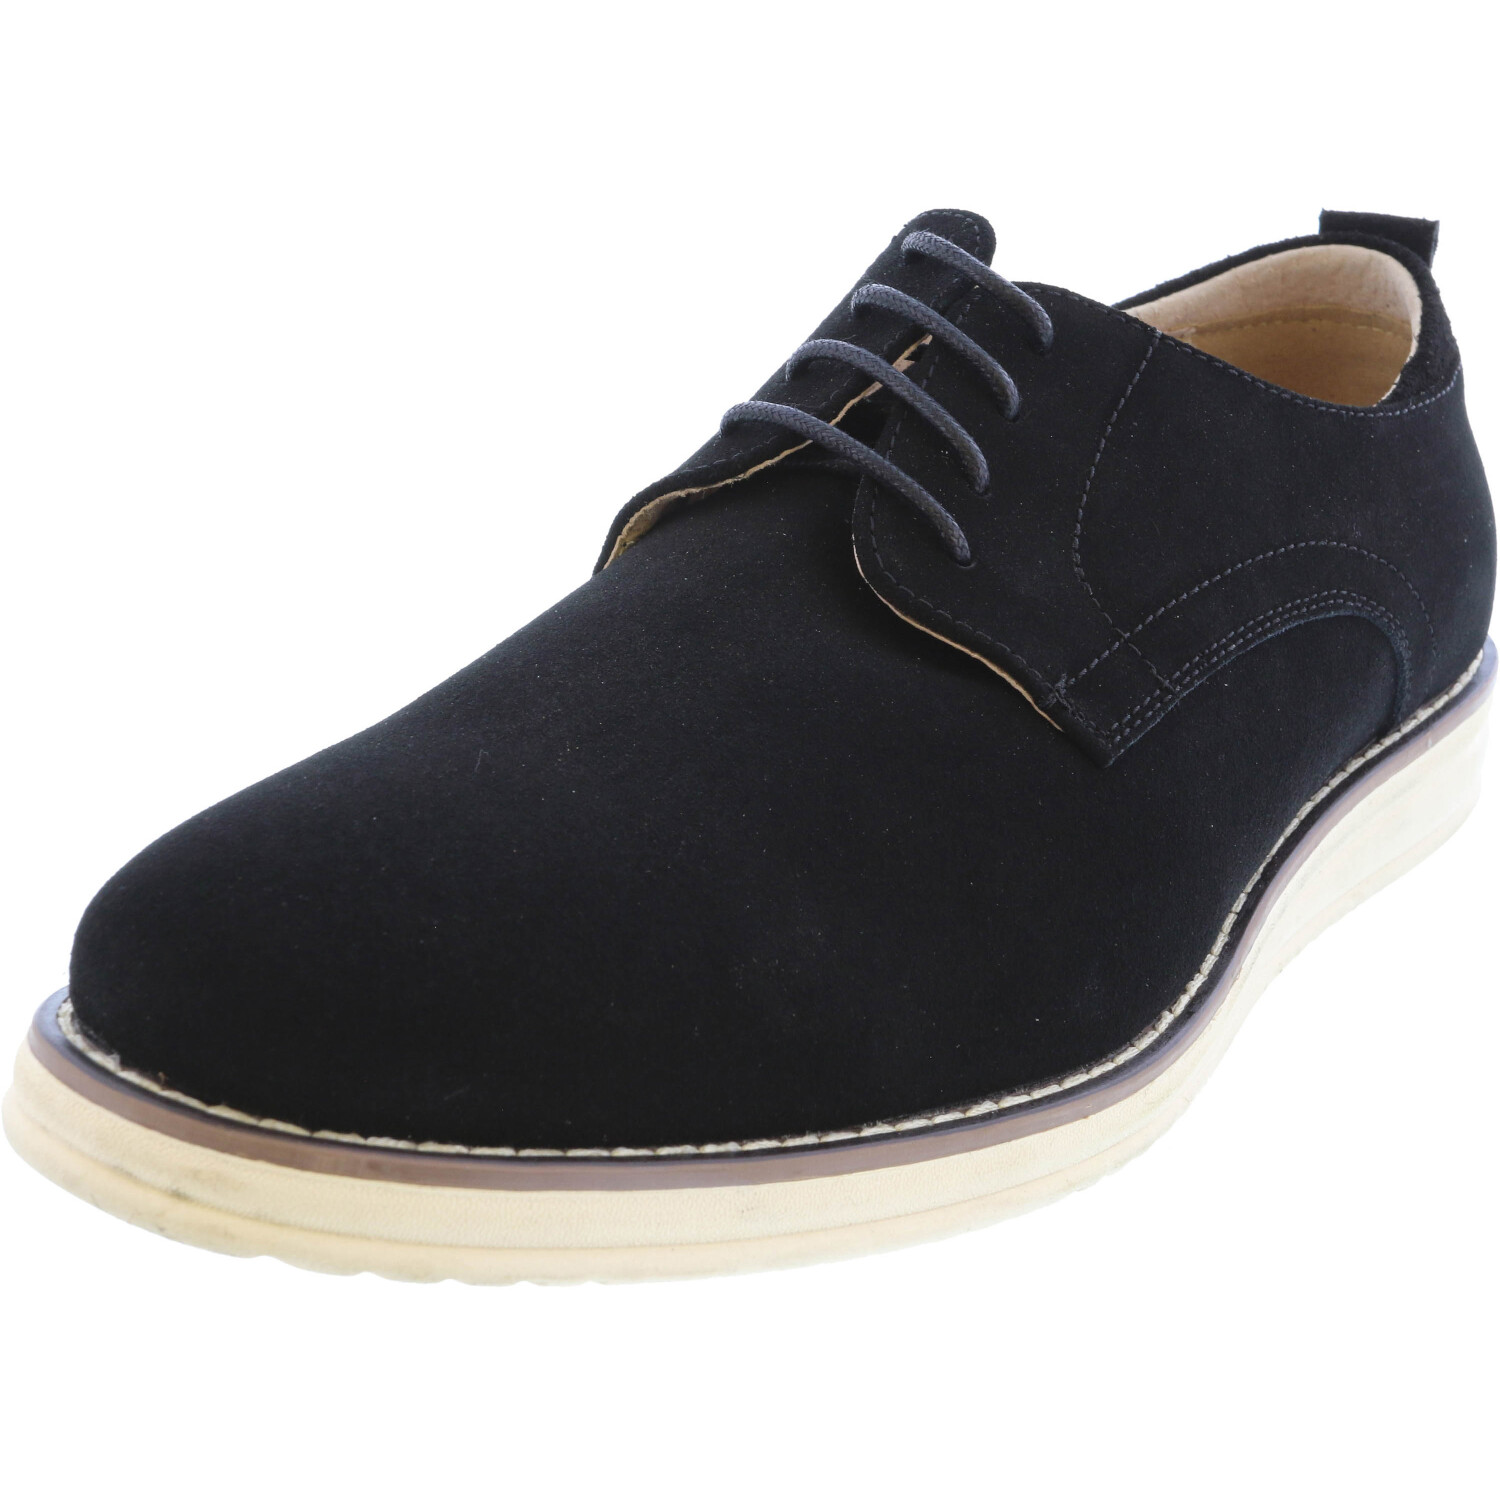 English Laundry Men's Nathan Black Ankle-High Leather Oxford - 10M